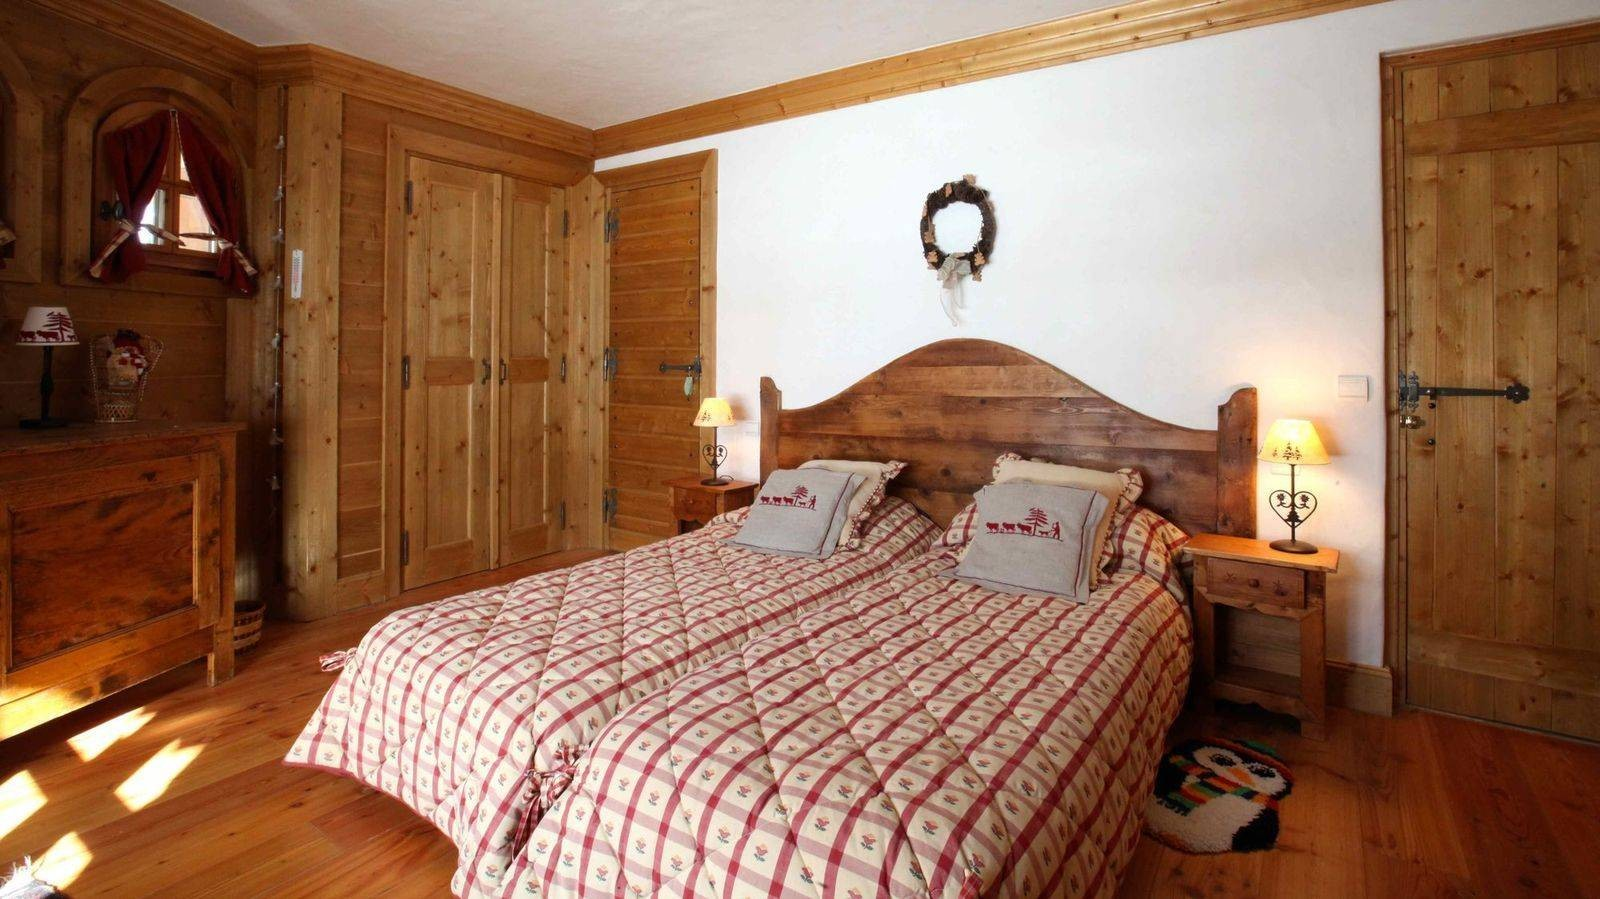 Courchevel 1850 Location Chalet Luxe Tantalite  Chambre 2